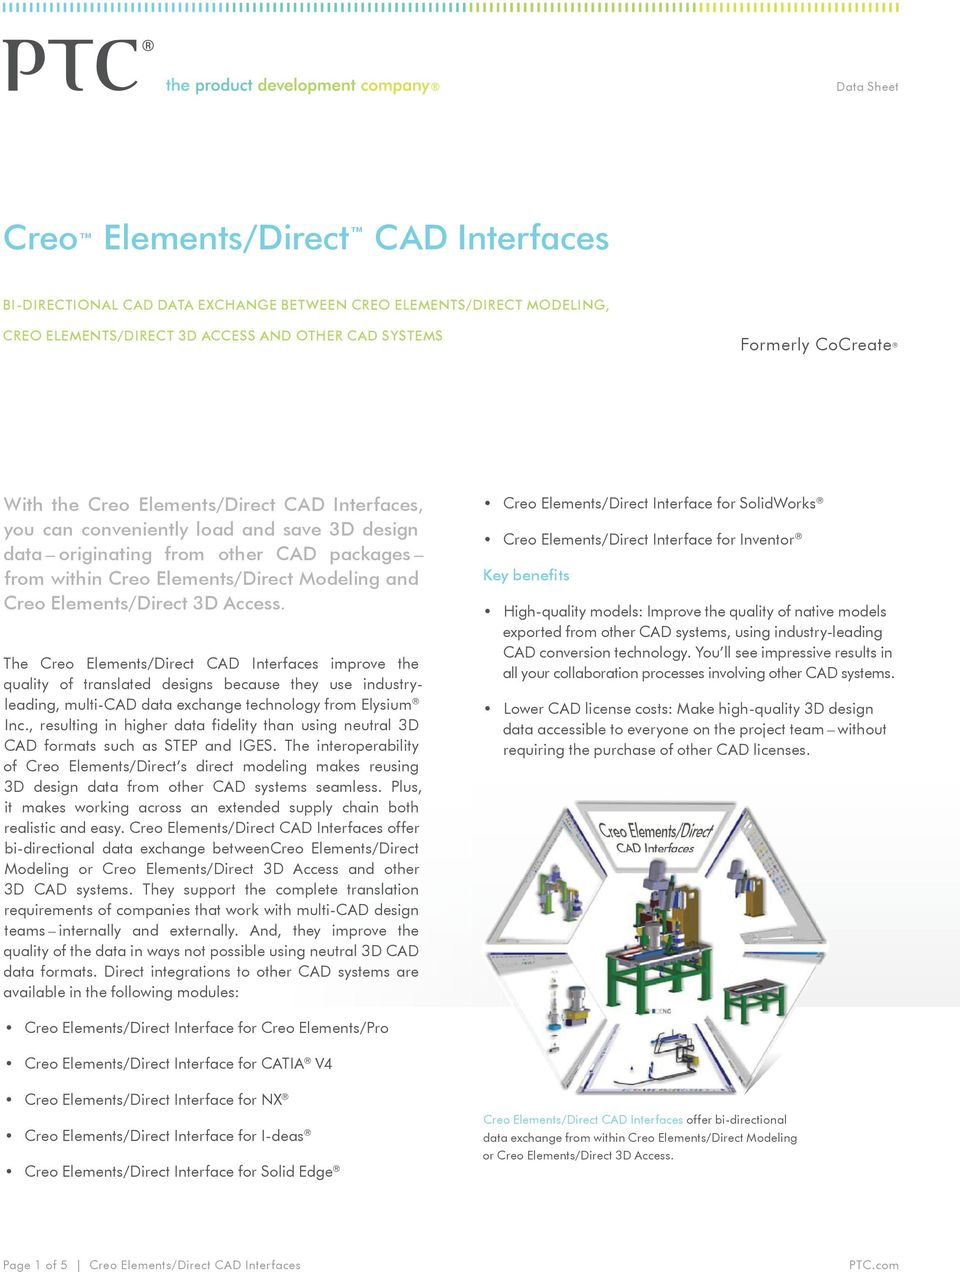 Creo Elements/Direct CAD Interfaces - PDF